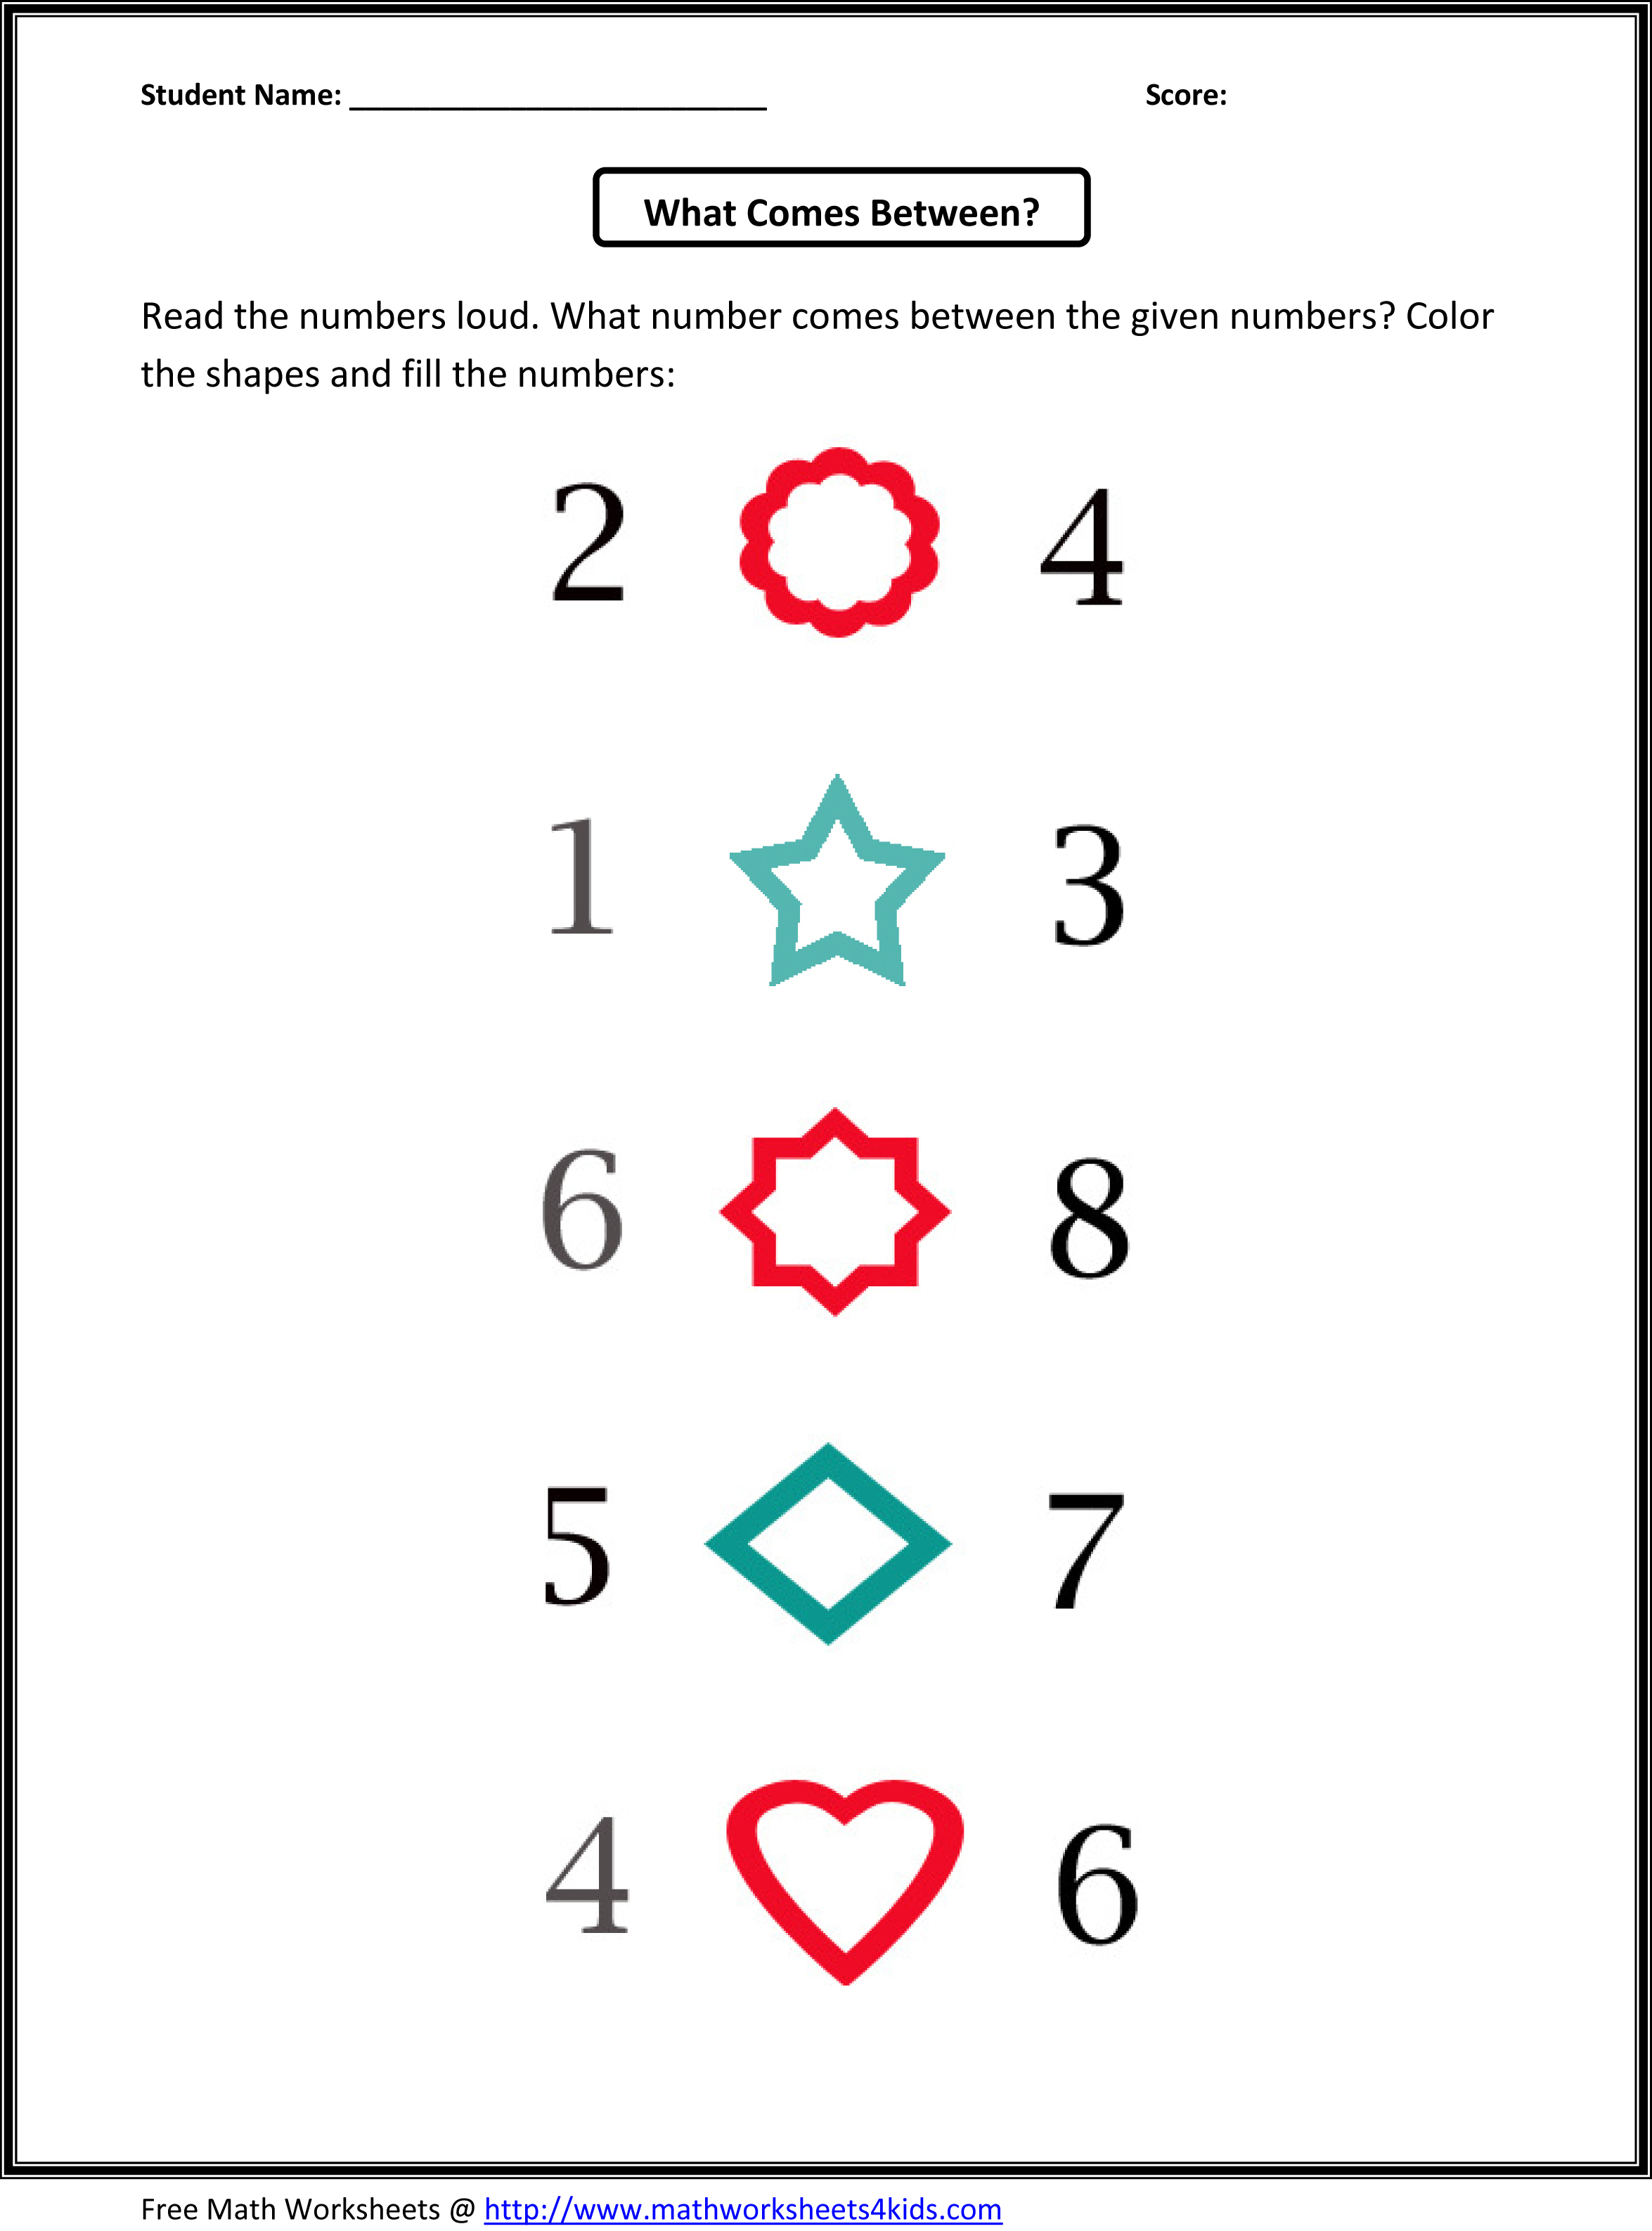 Number Patterns Worksheets Free Patterns